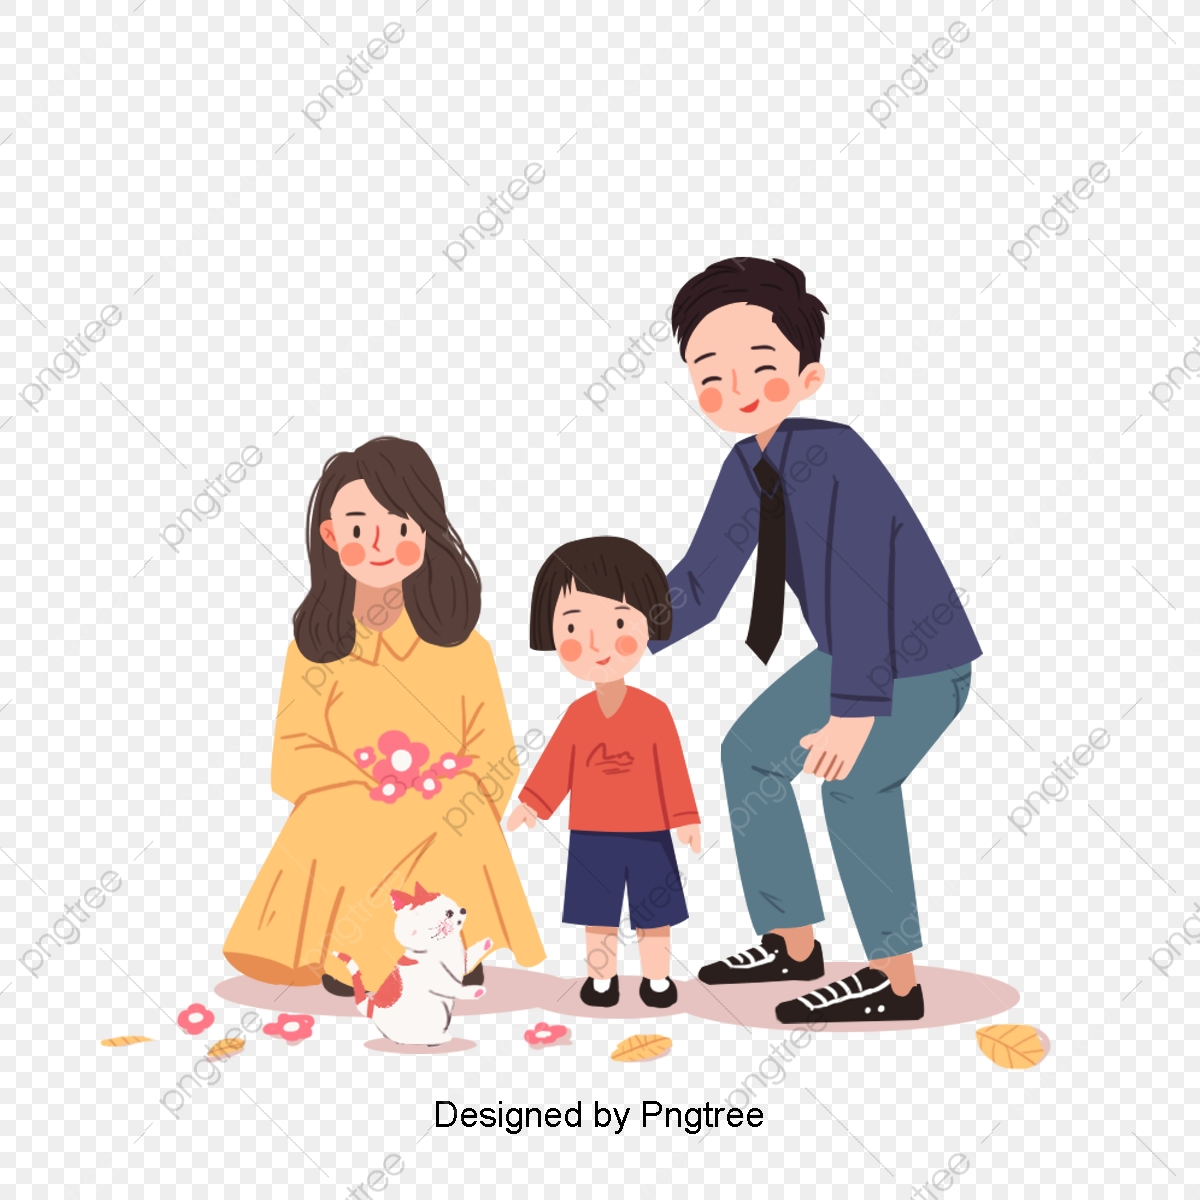 A Cartoon Family Of Three Family Photos Photo Clipart Red Color Png Transparent Clipart Image And Psd File For Free Download 1,283 likes · 8 talking about this. https pngtree com freepng a cartoon family of three family photos 3690337 html